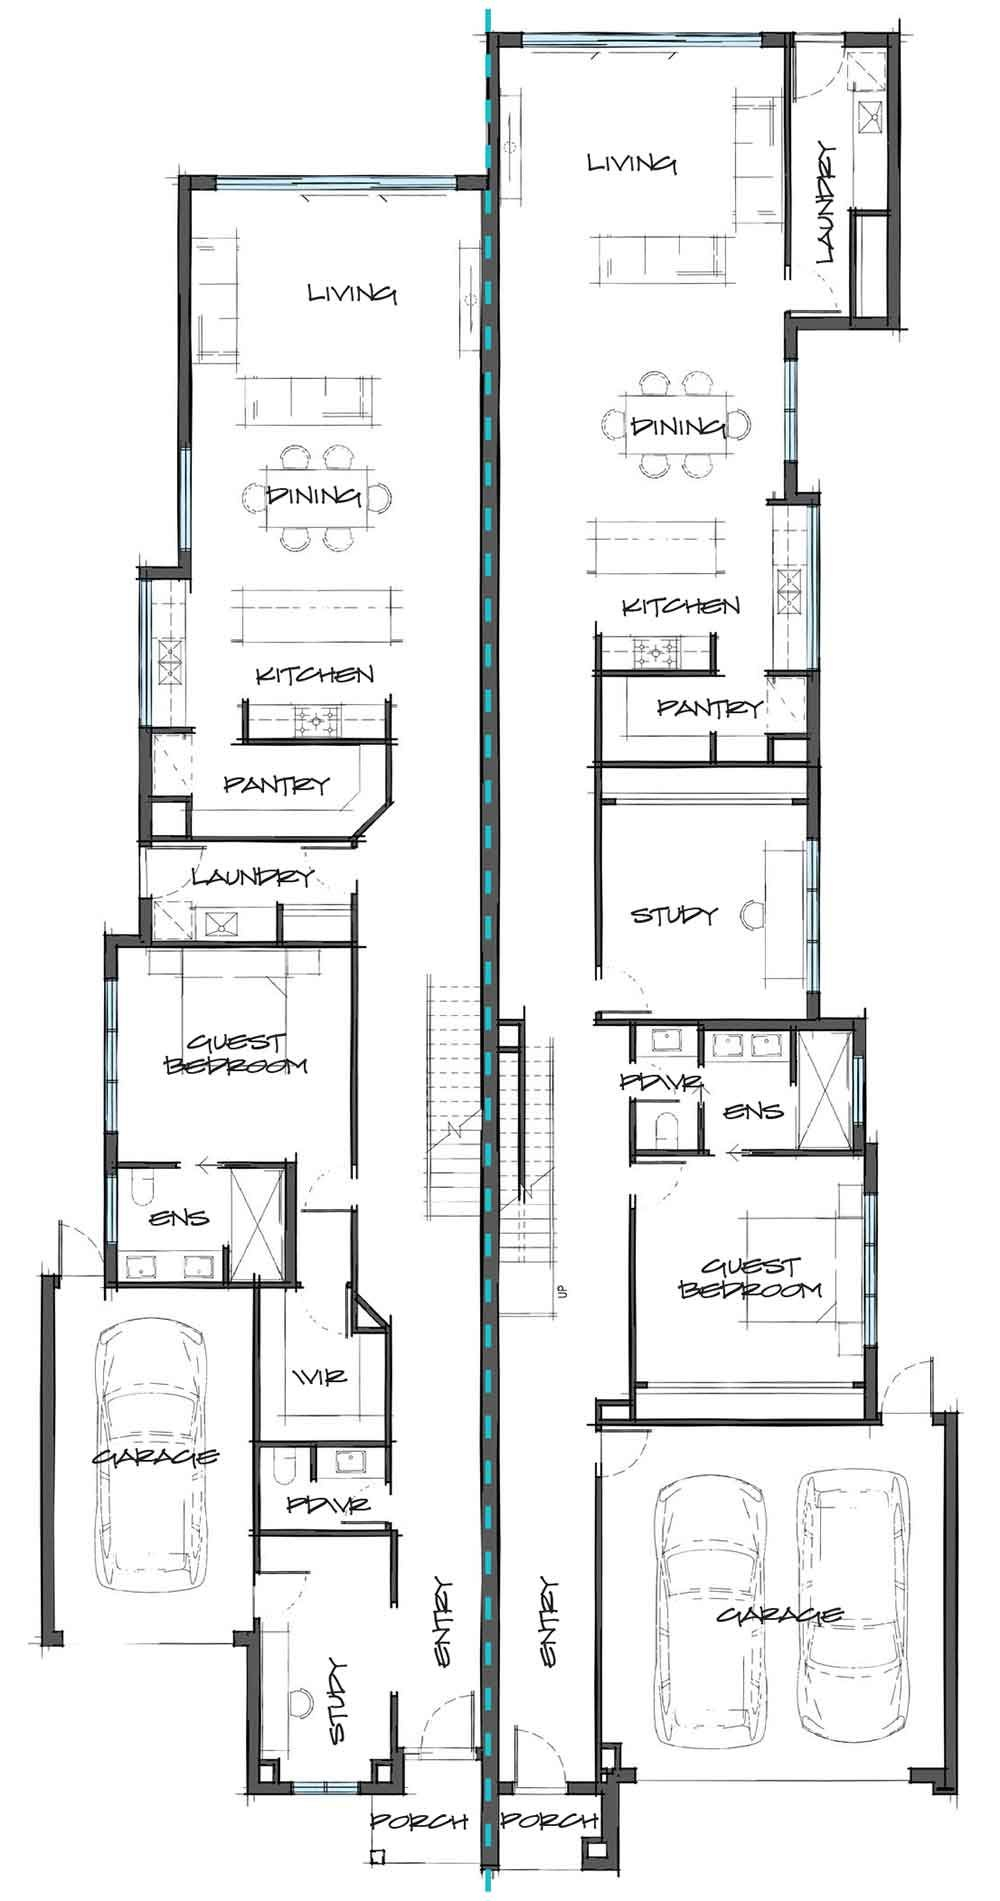 Dual Occupancy Carter Grange Homes Melbourne Dual Occupancy Duplex Plans Narrow House Plans